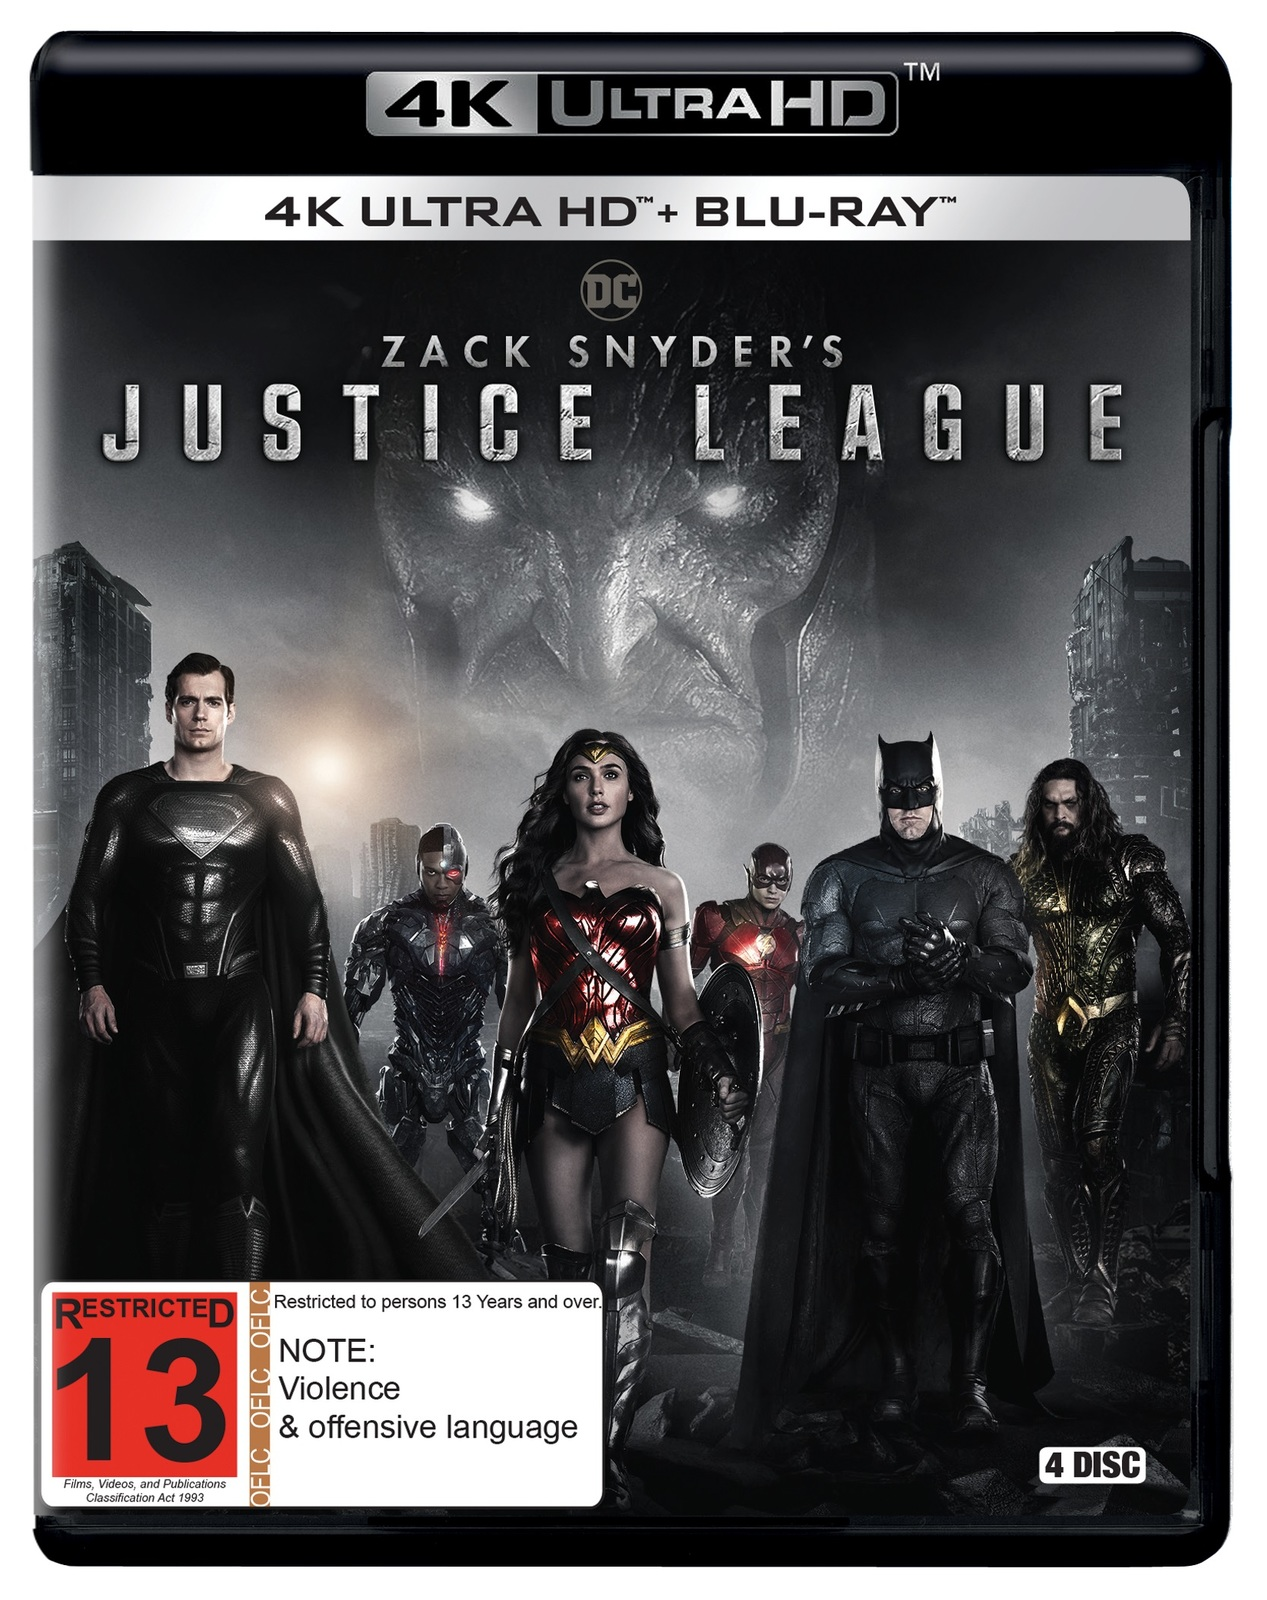 Zack Snyder's Justice League (4K UHD + Blu-Ray) image